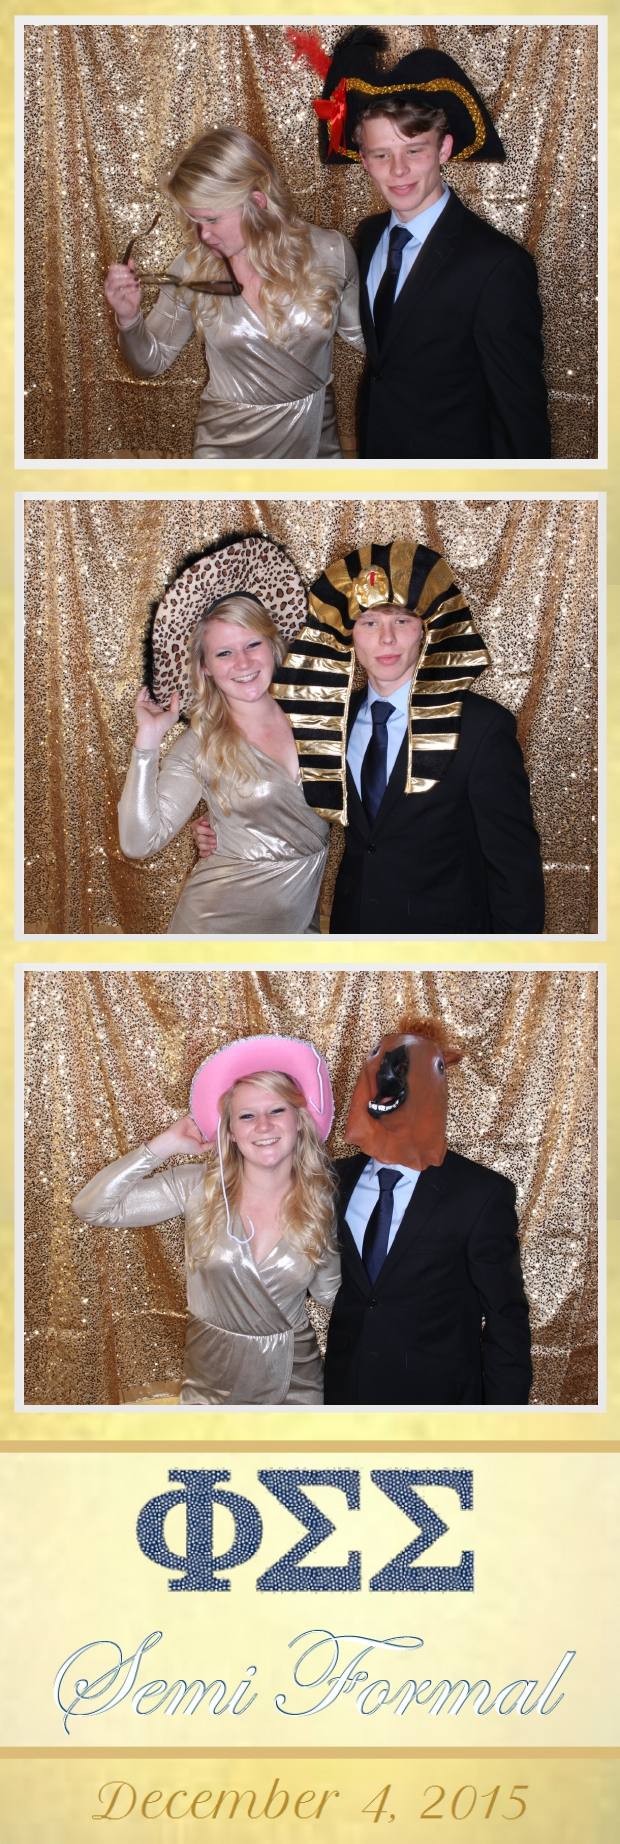 Guest House Events Photo Booth Phi Sigma Sigma Semi Formal (19).jpg